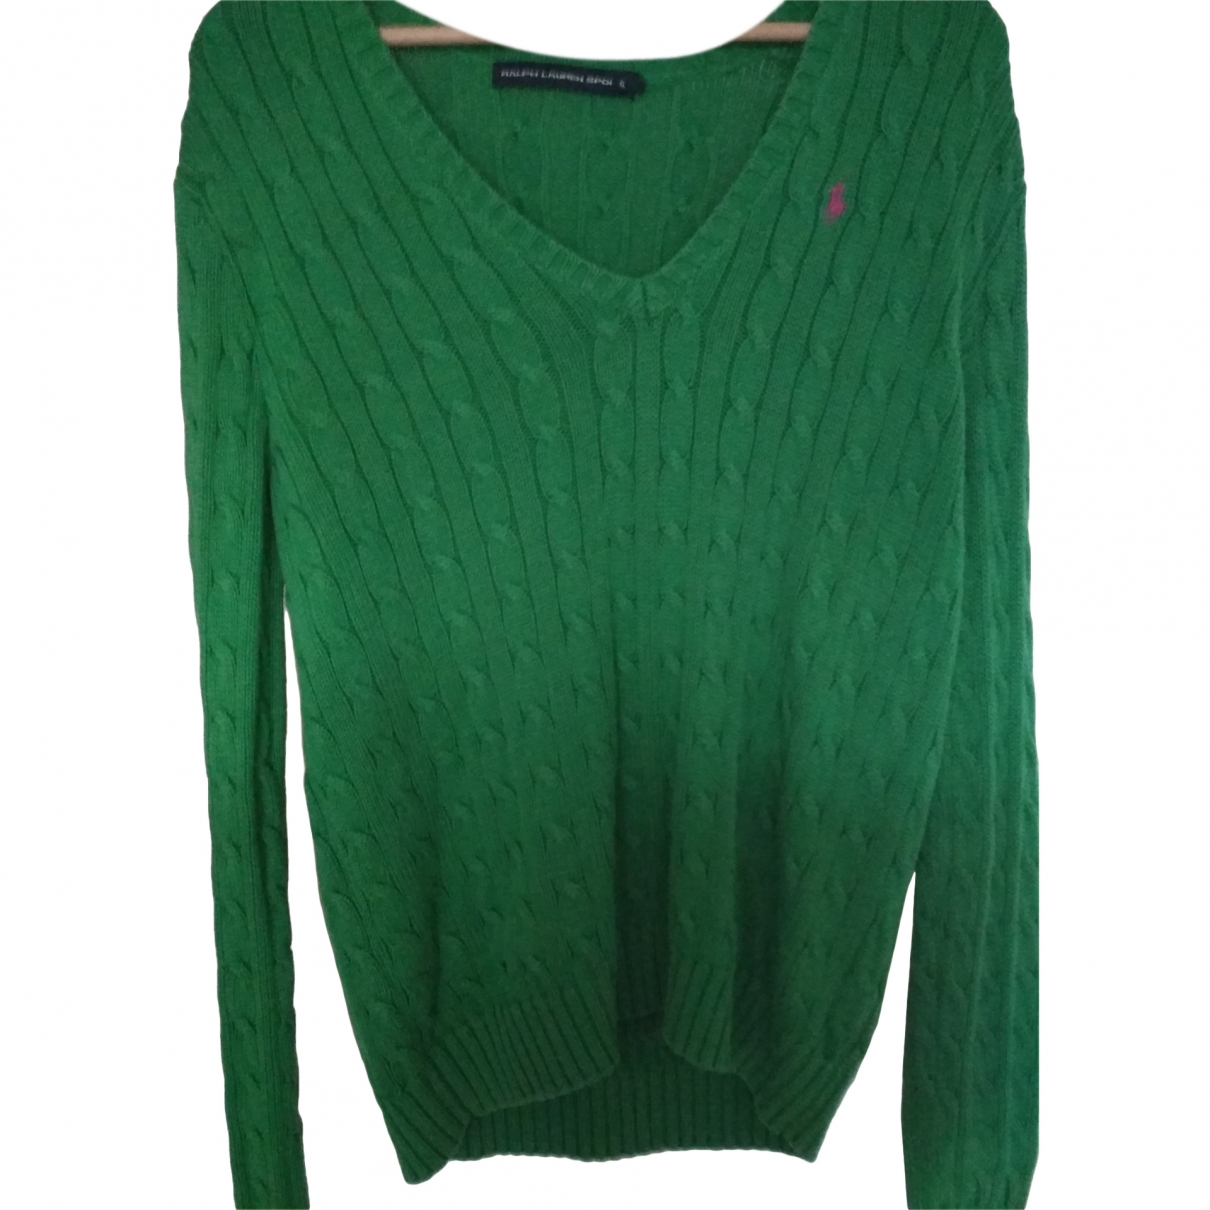 Polo Ralph Lauren \N Green Cotton Knitwear for Women XL International